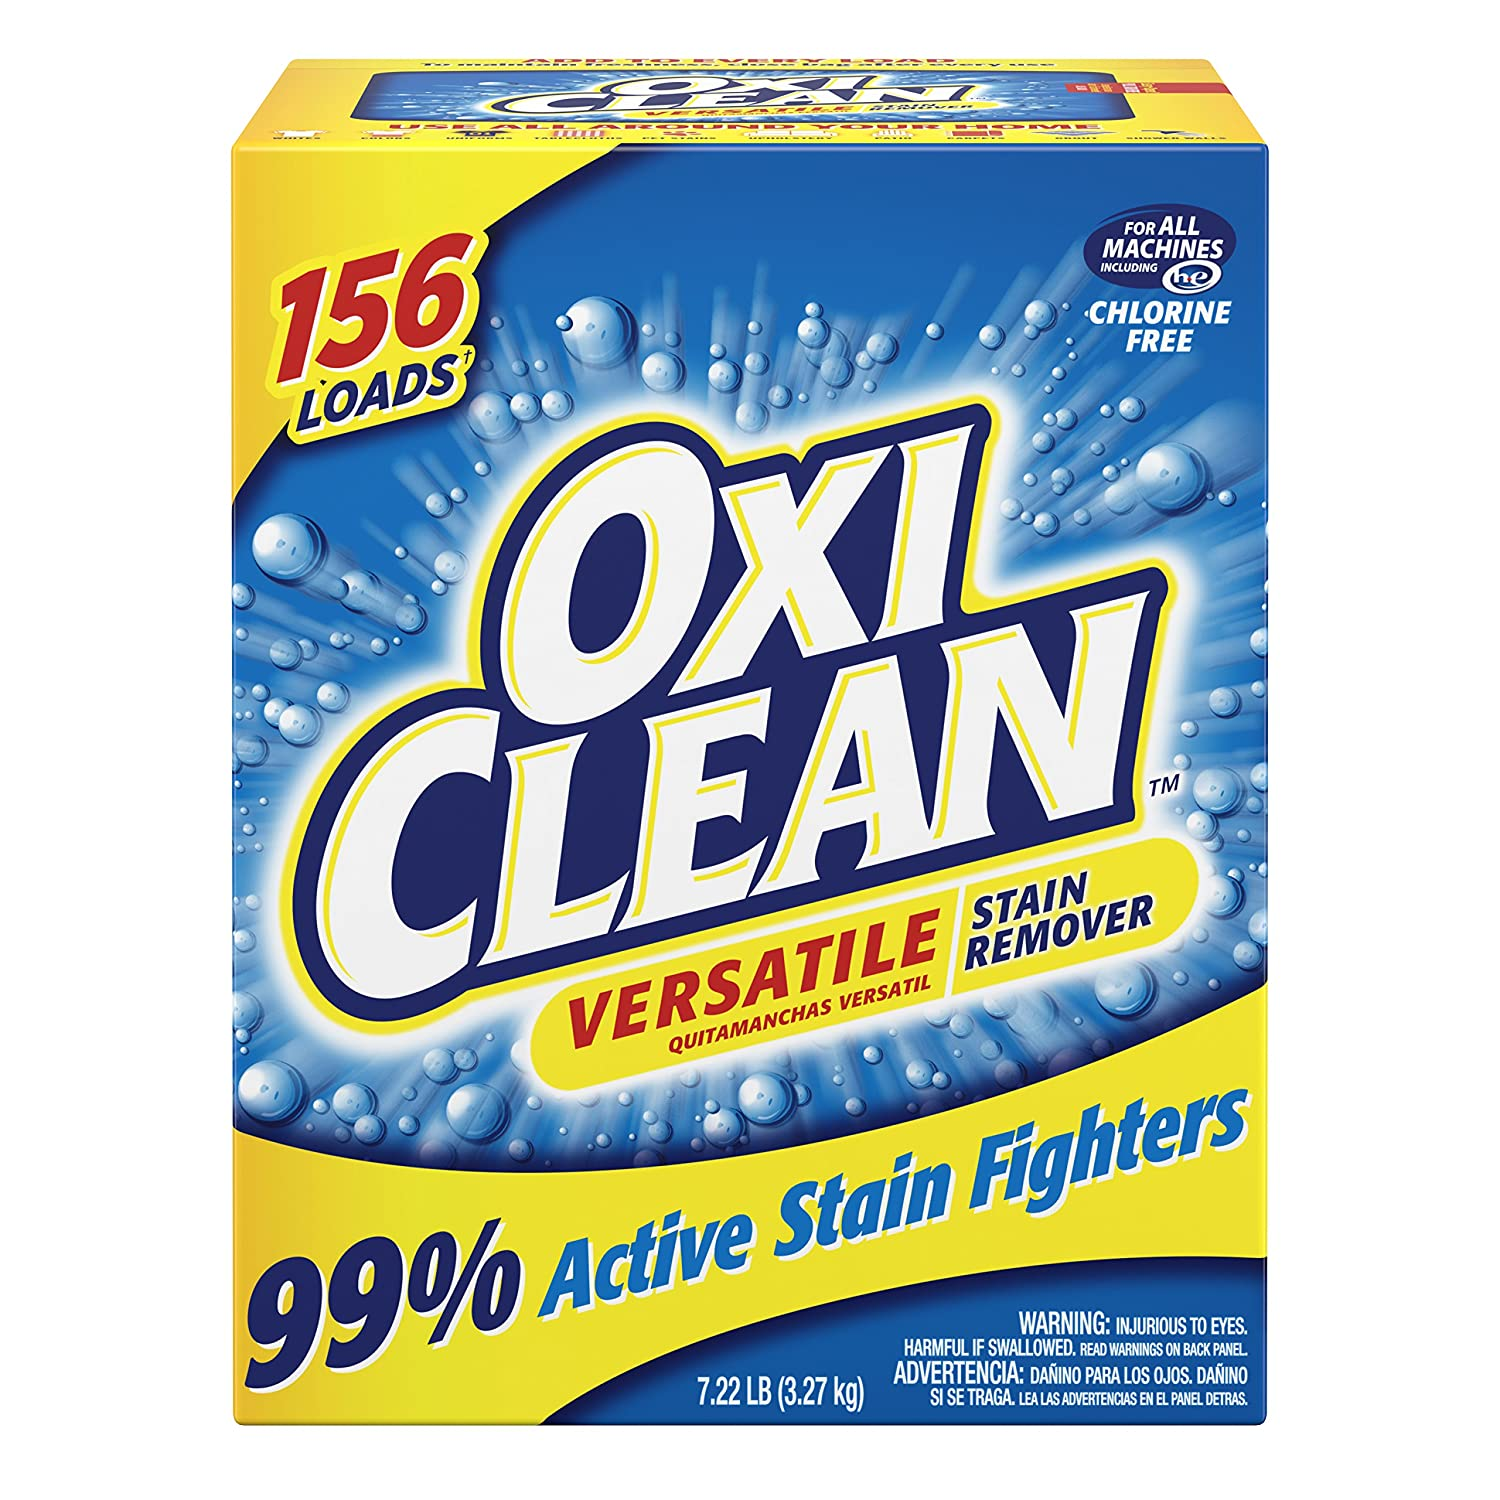 OxiClean Versatile Stain Remover Powder, 115.3 Ounce